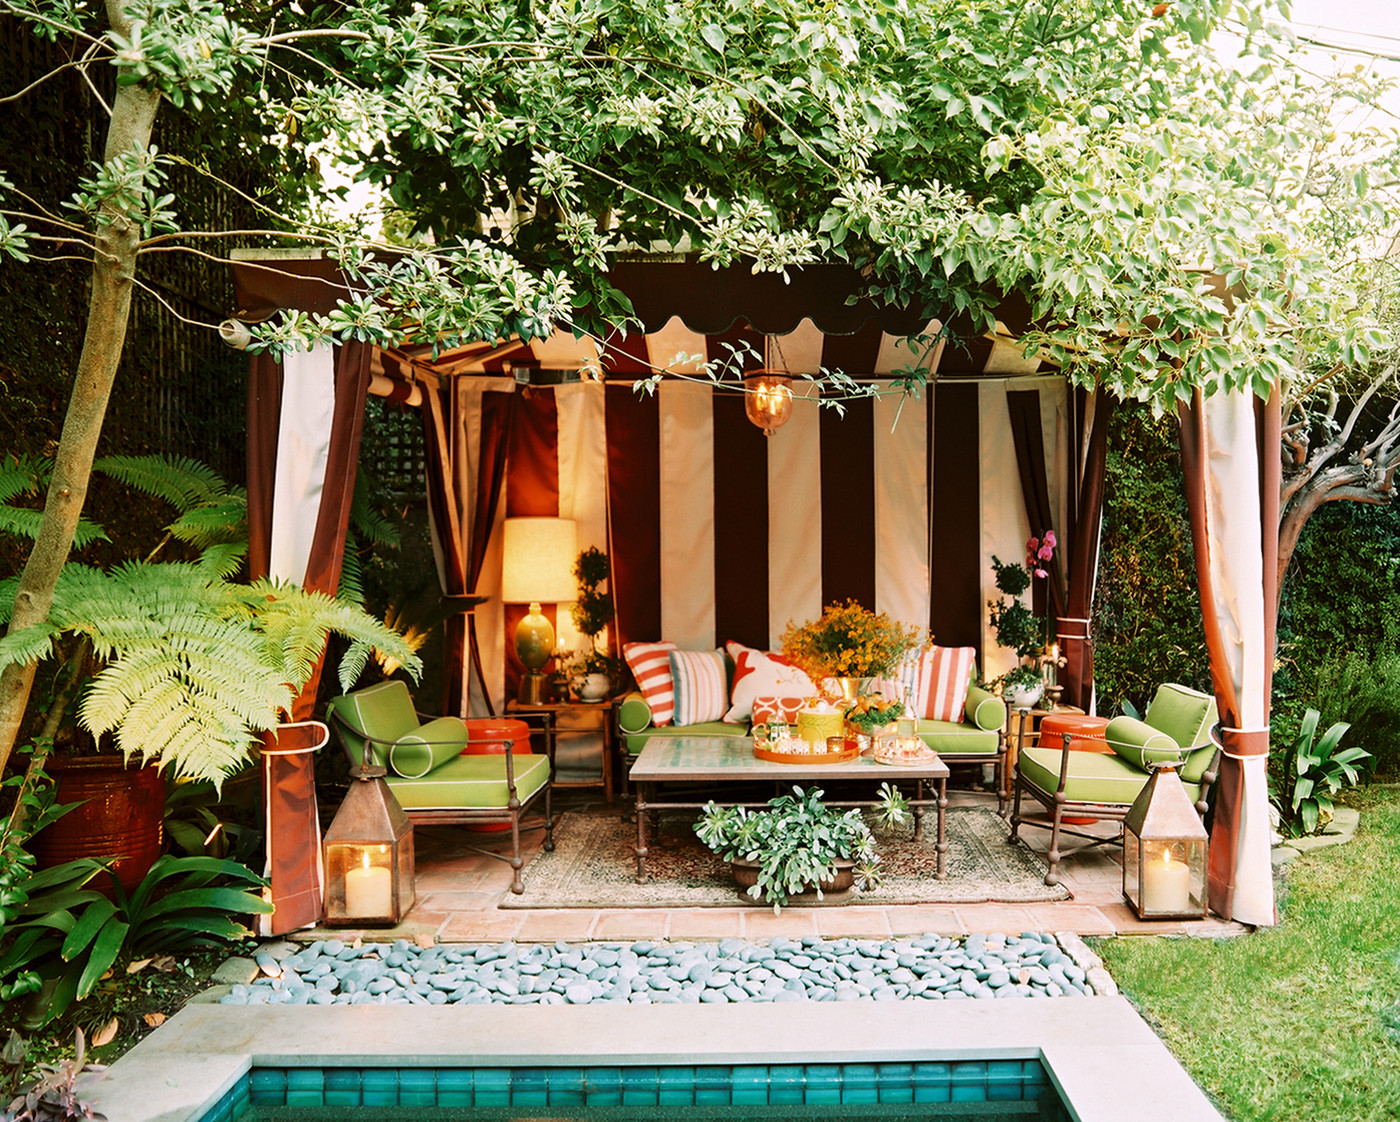 Back patio with a garden tent (photo via Lonny)